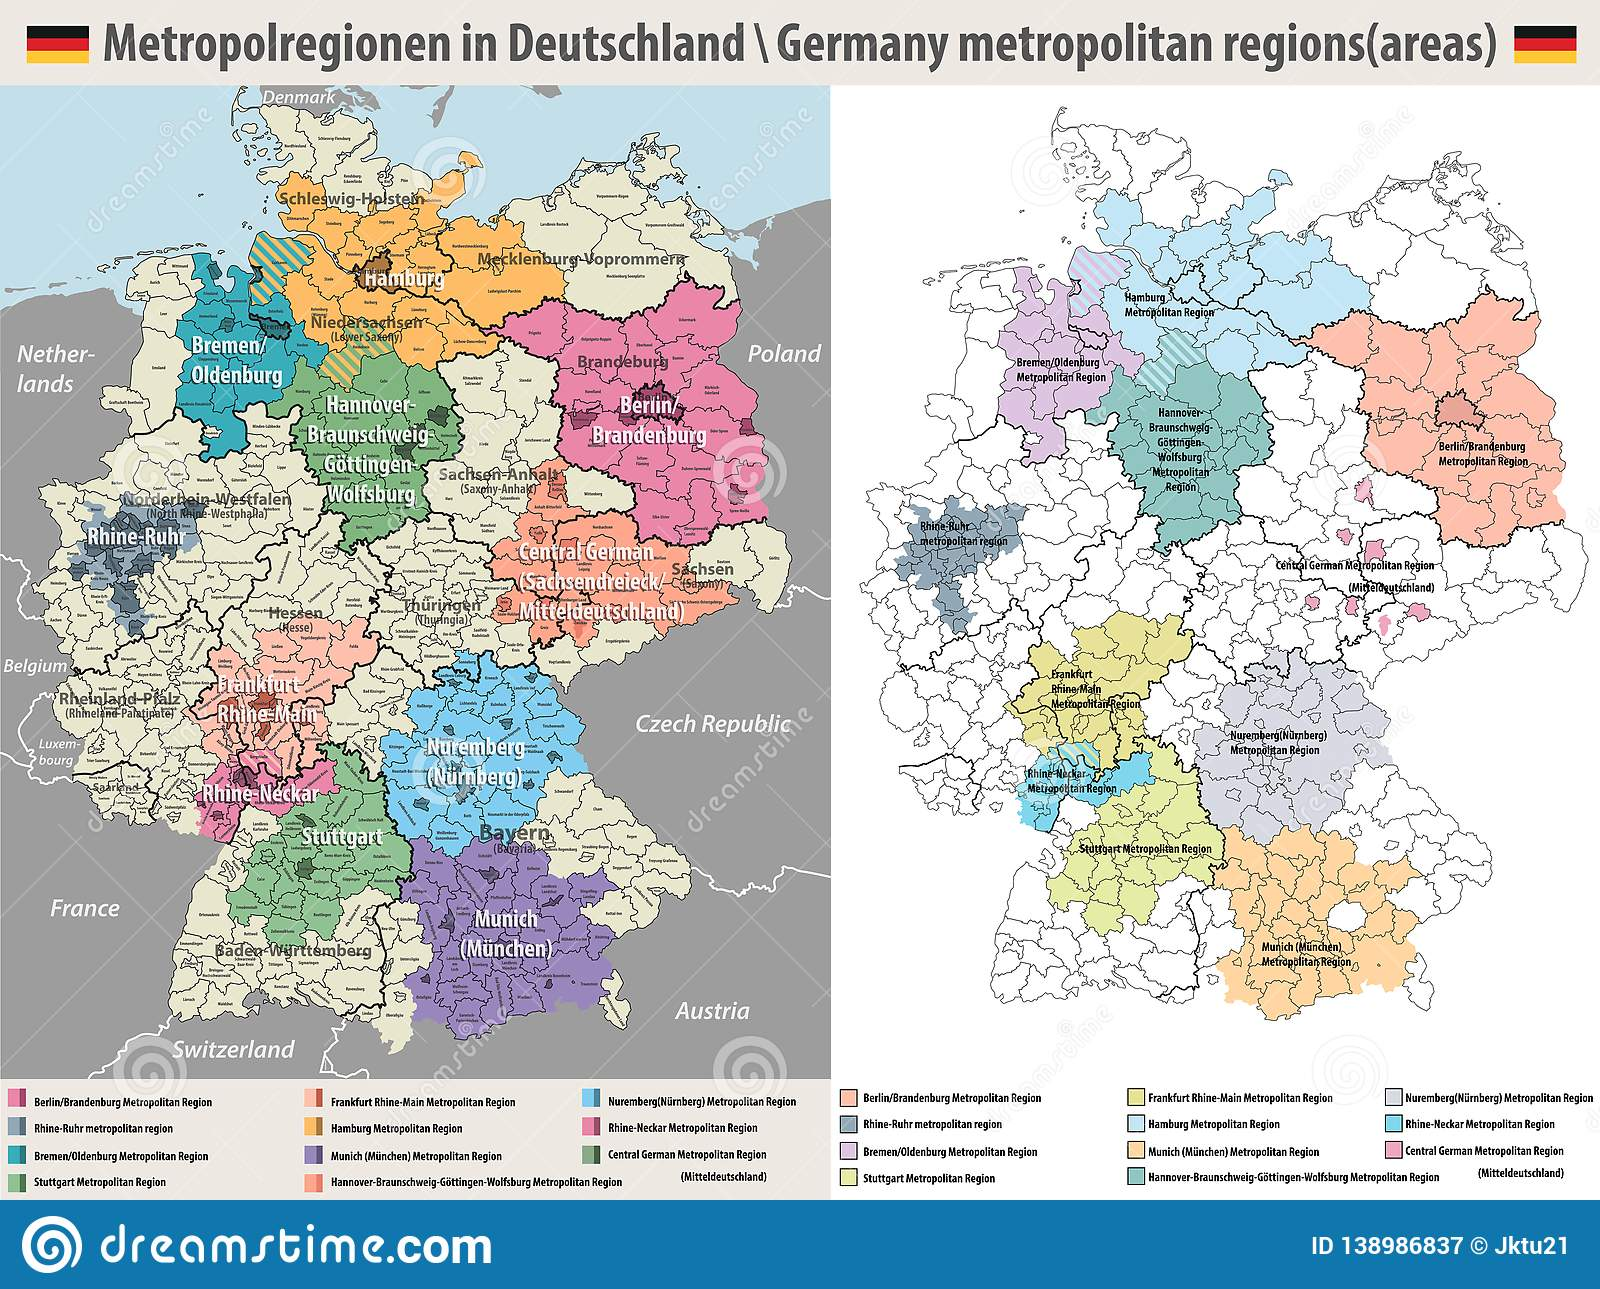 Map Of Germany Regions.Germany Metropolitan Regions Vector Maps Stock Vector Illustration